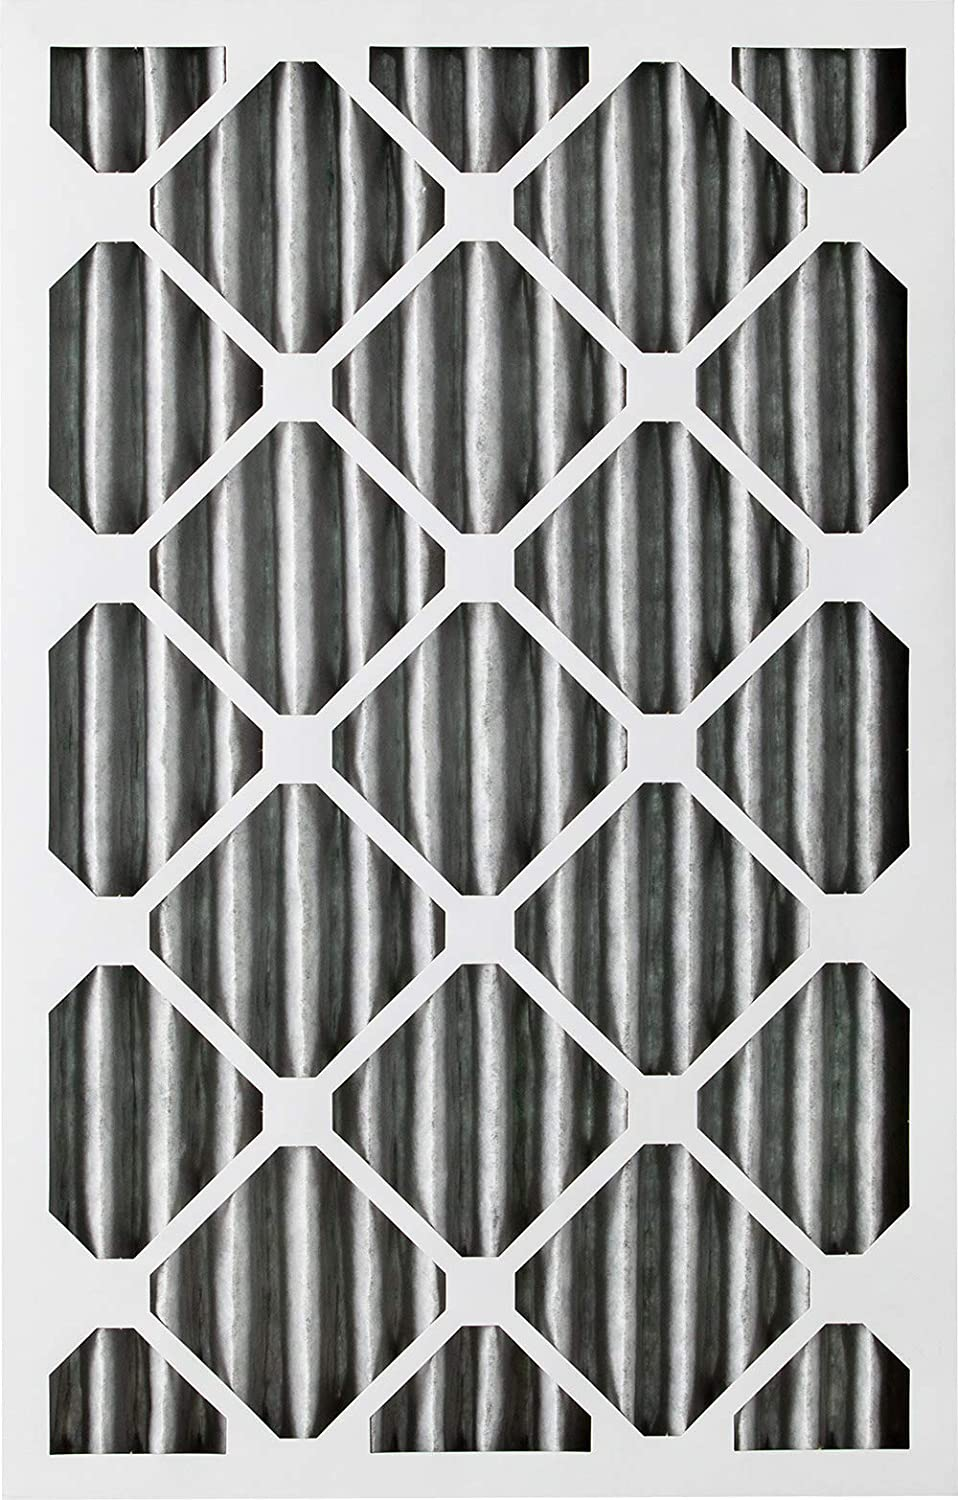 Nordic Pure 18x20x2 MERV 8 Pleated Plus Carbon AC Furnace Air Filters 18 x 20 x 2 12 Piece